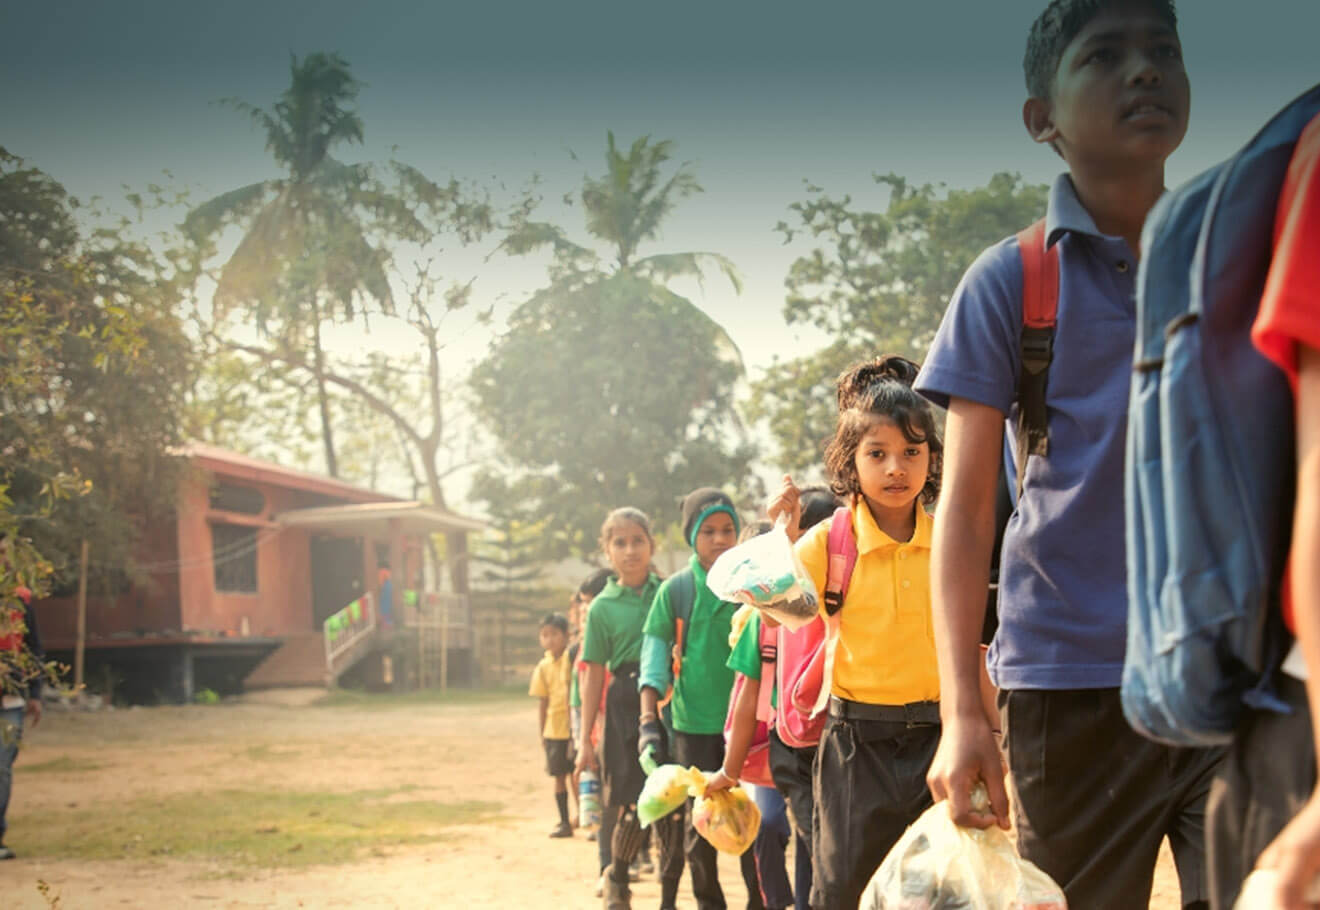 Children lining up to get into school, bringing their recycling to cover school fees